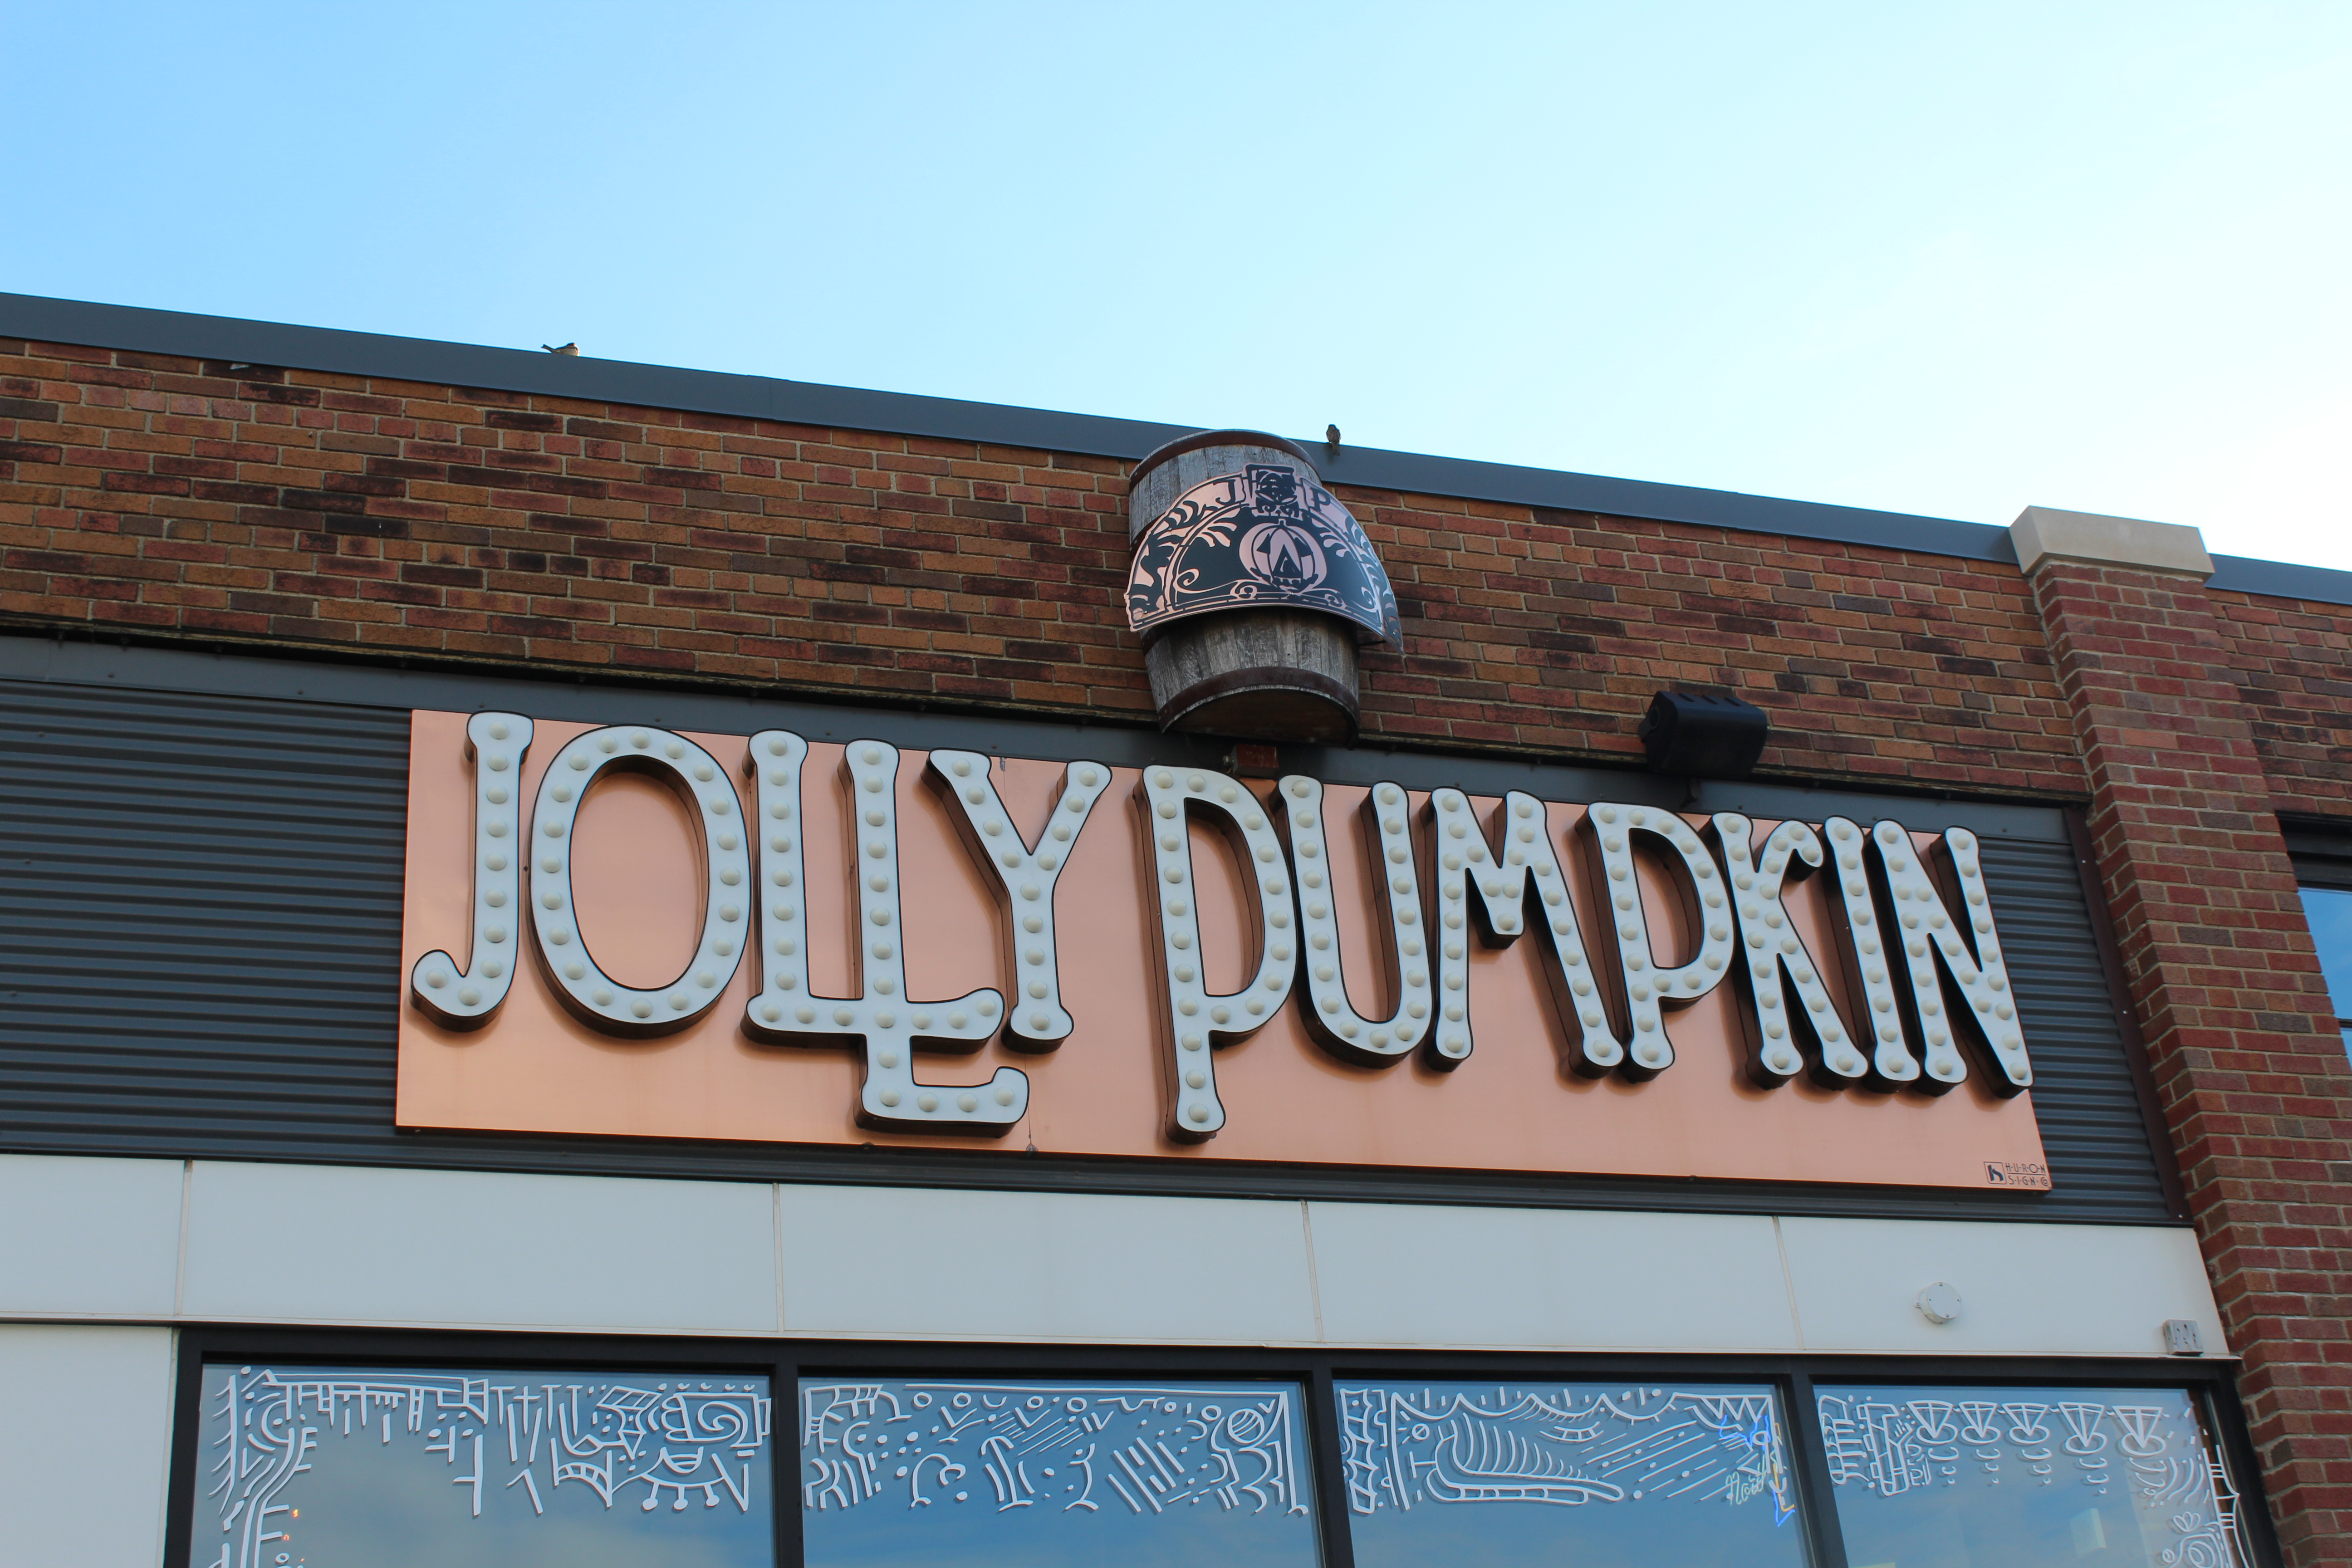 Photo of Jolly Pumpkin exterior sign